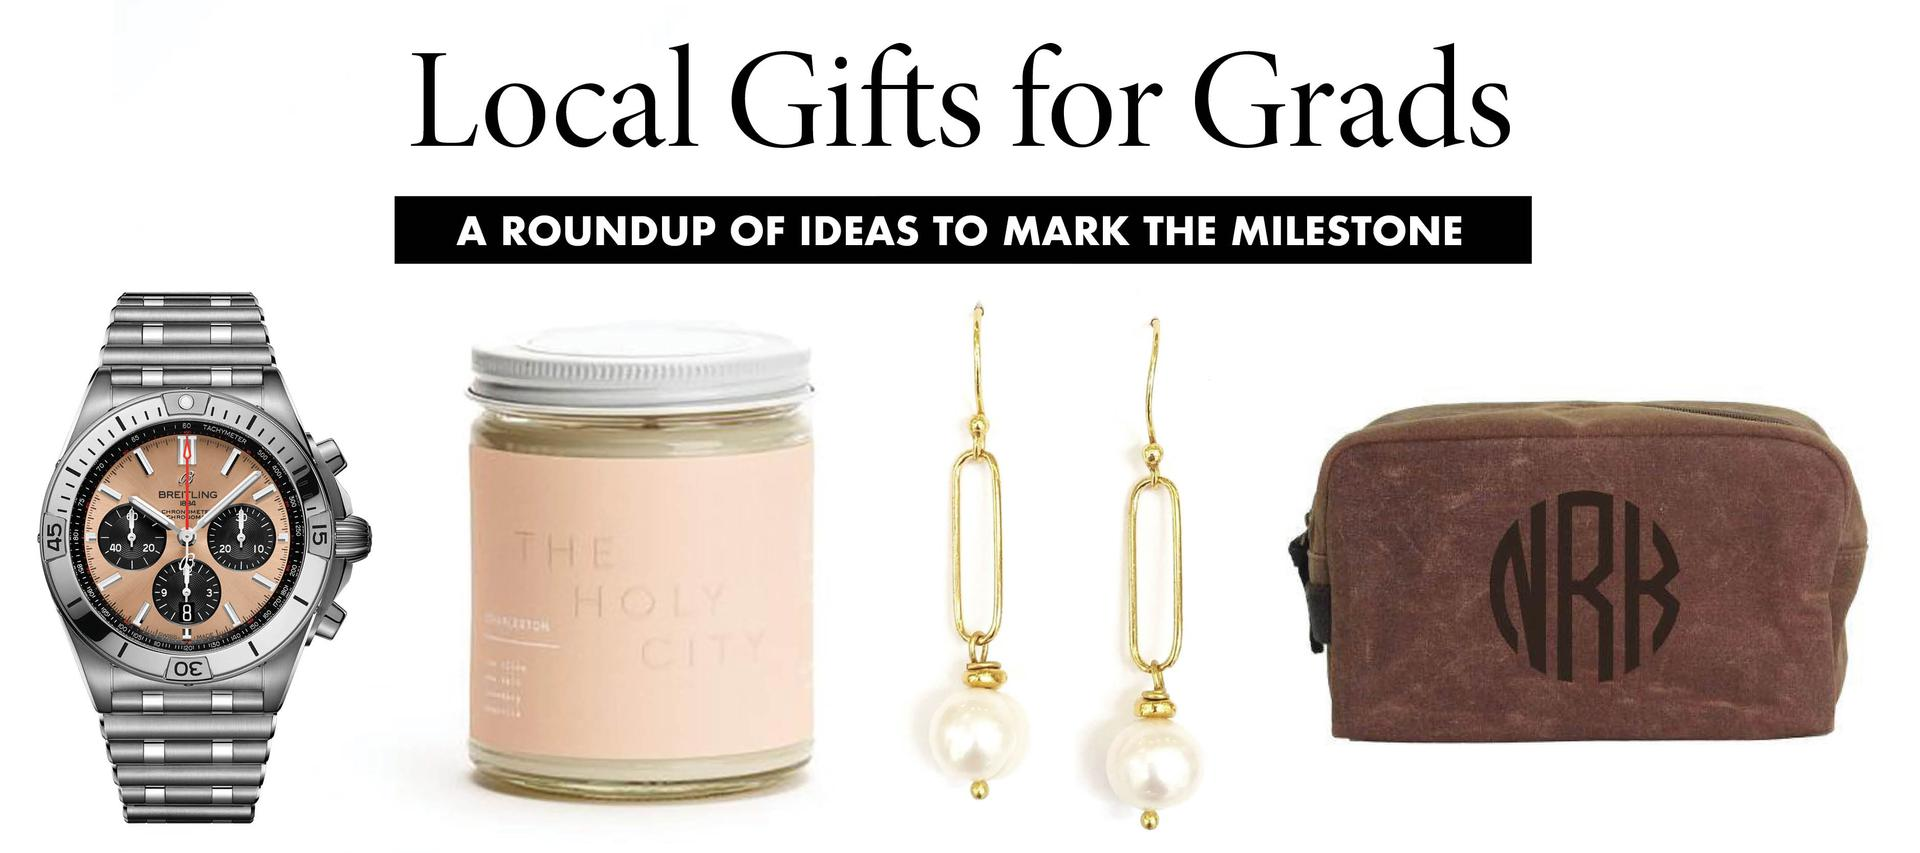 Local Gifts for Grads